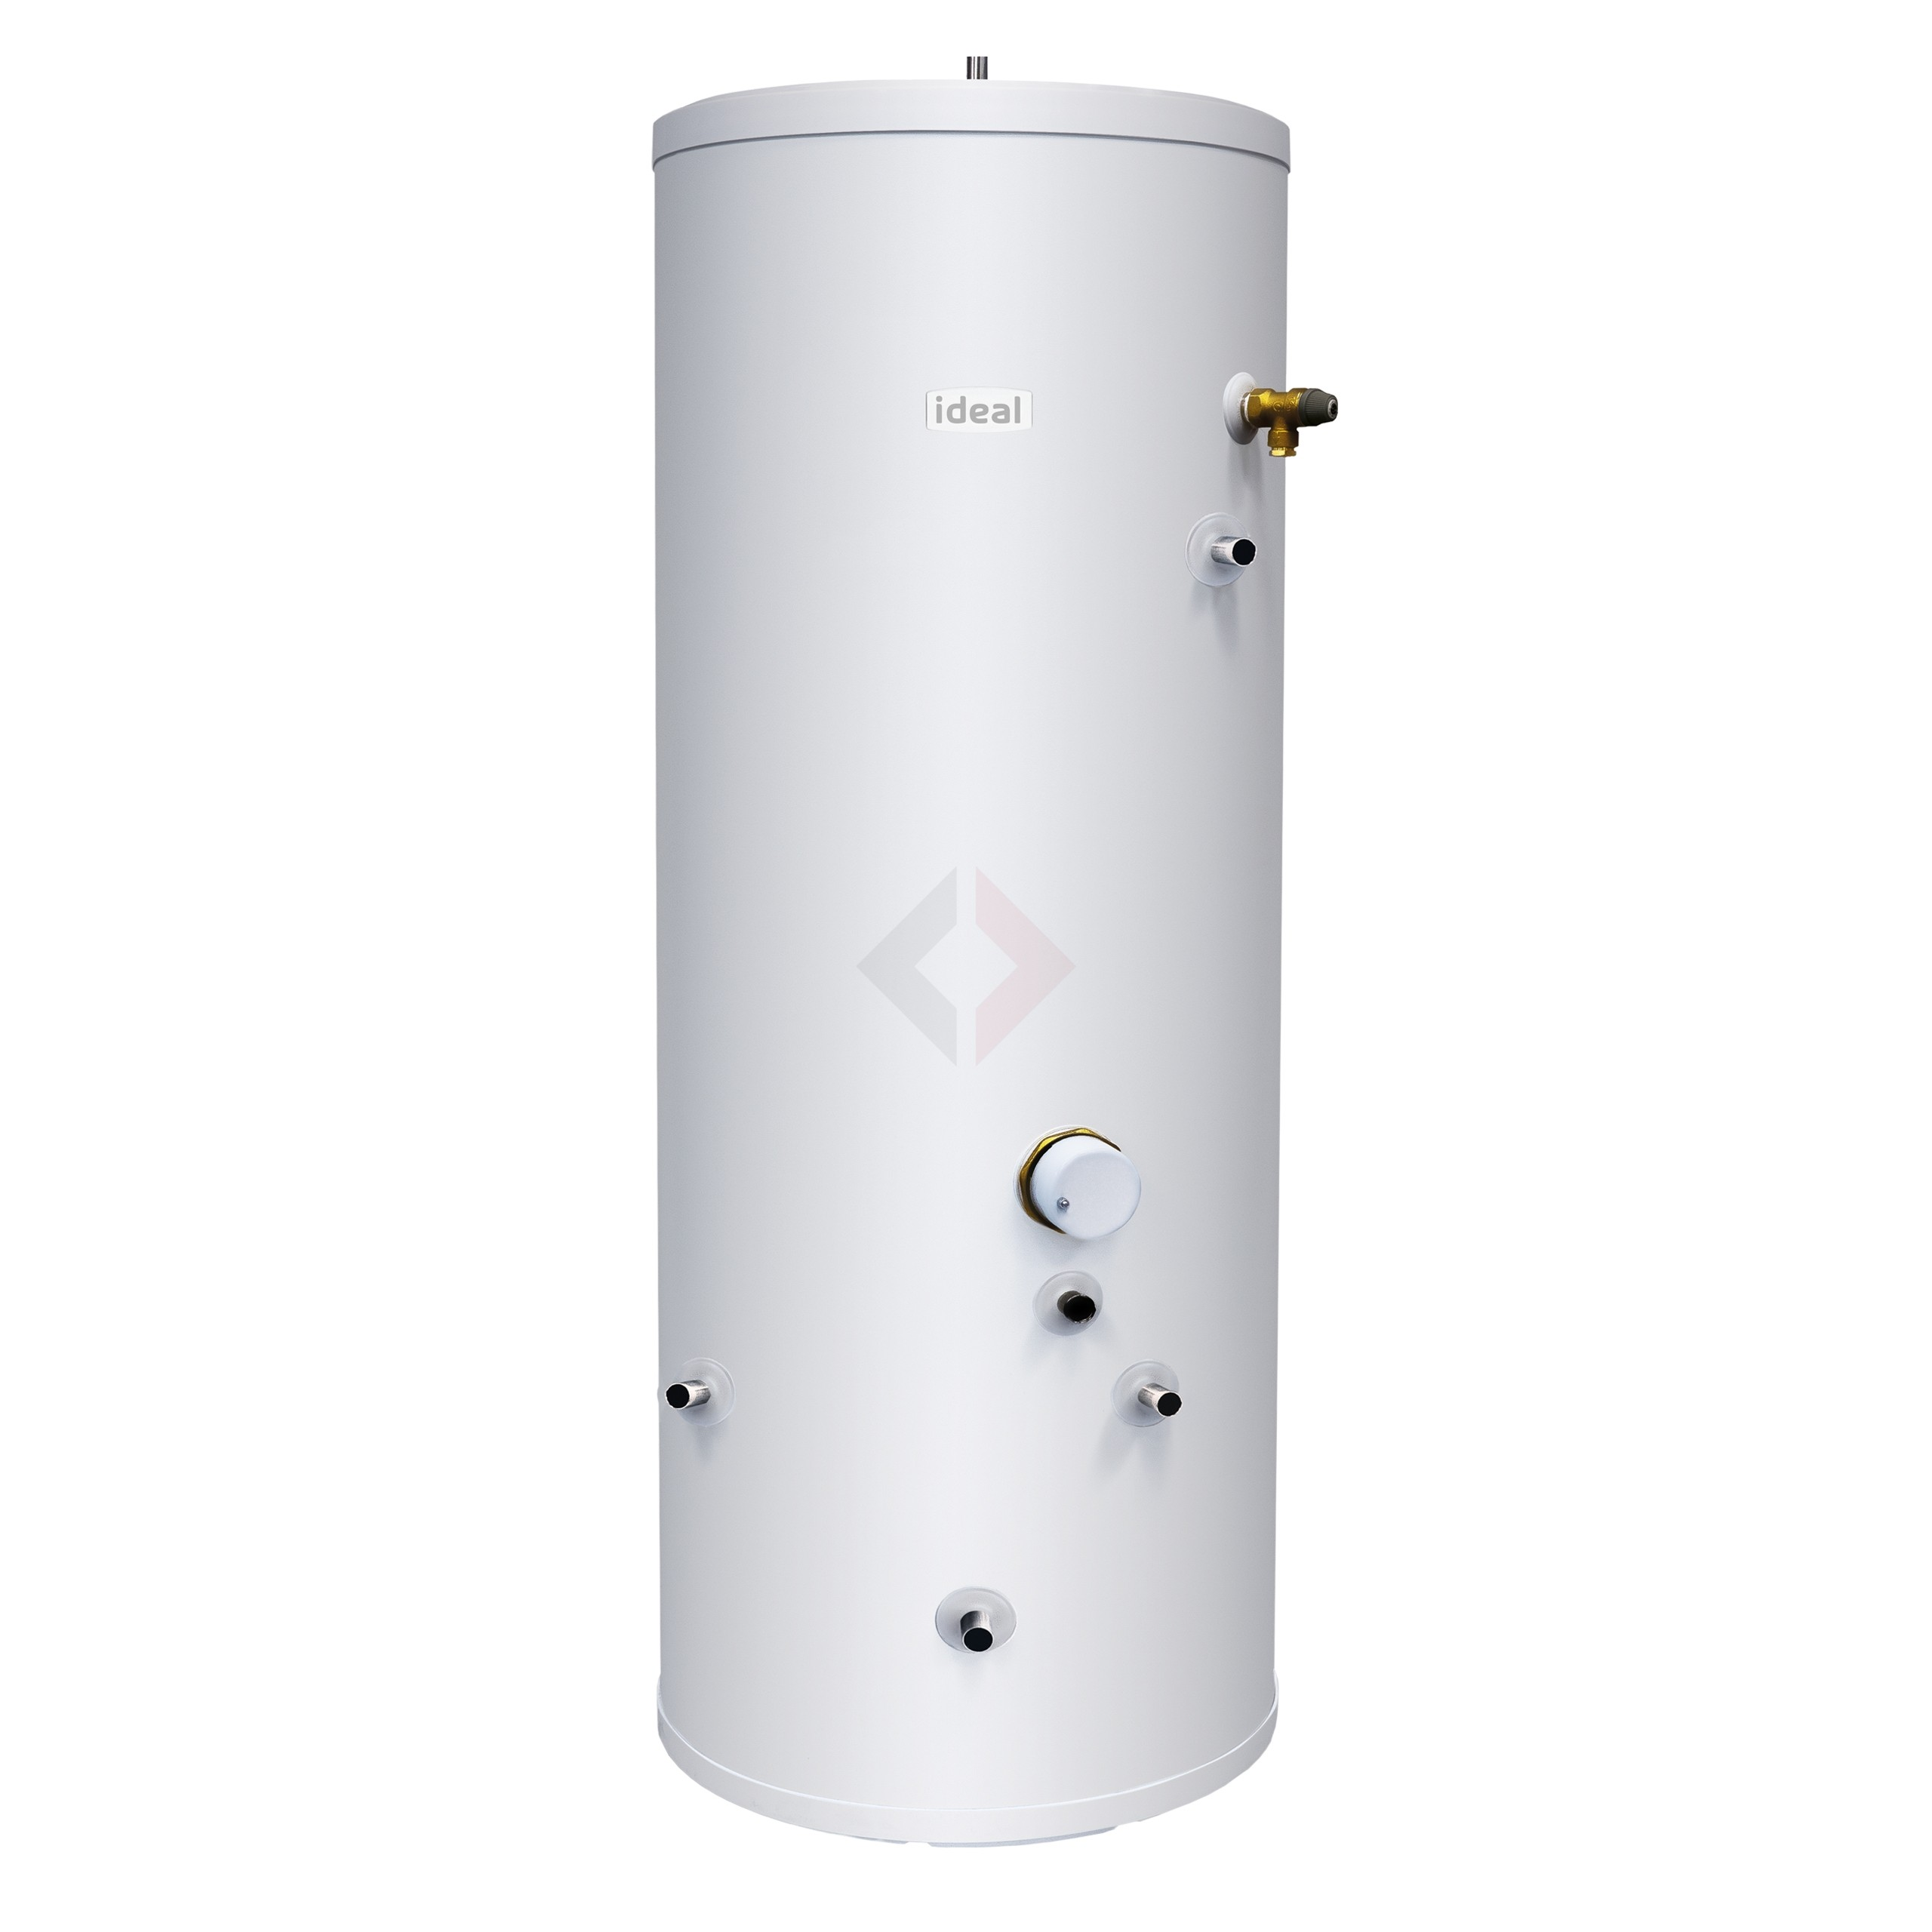 Ideal Pro 210L Indirect Unvented Cylinder, Easy Pack